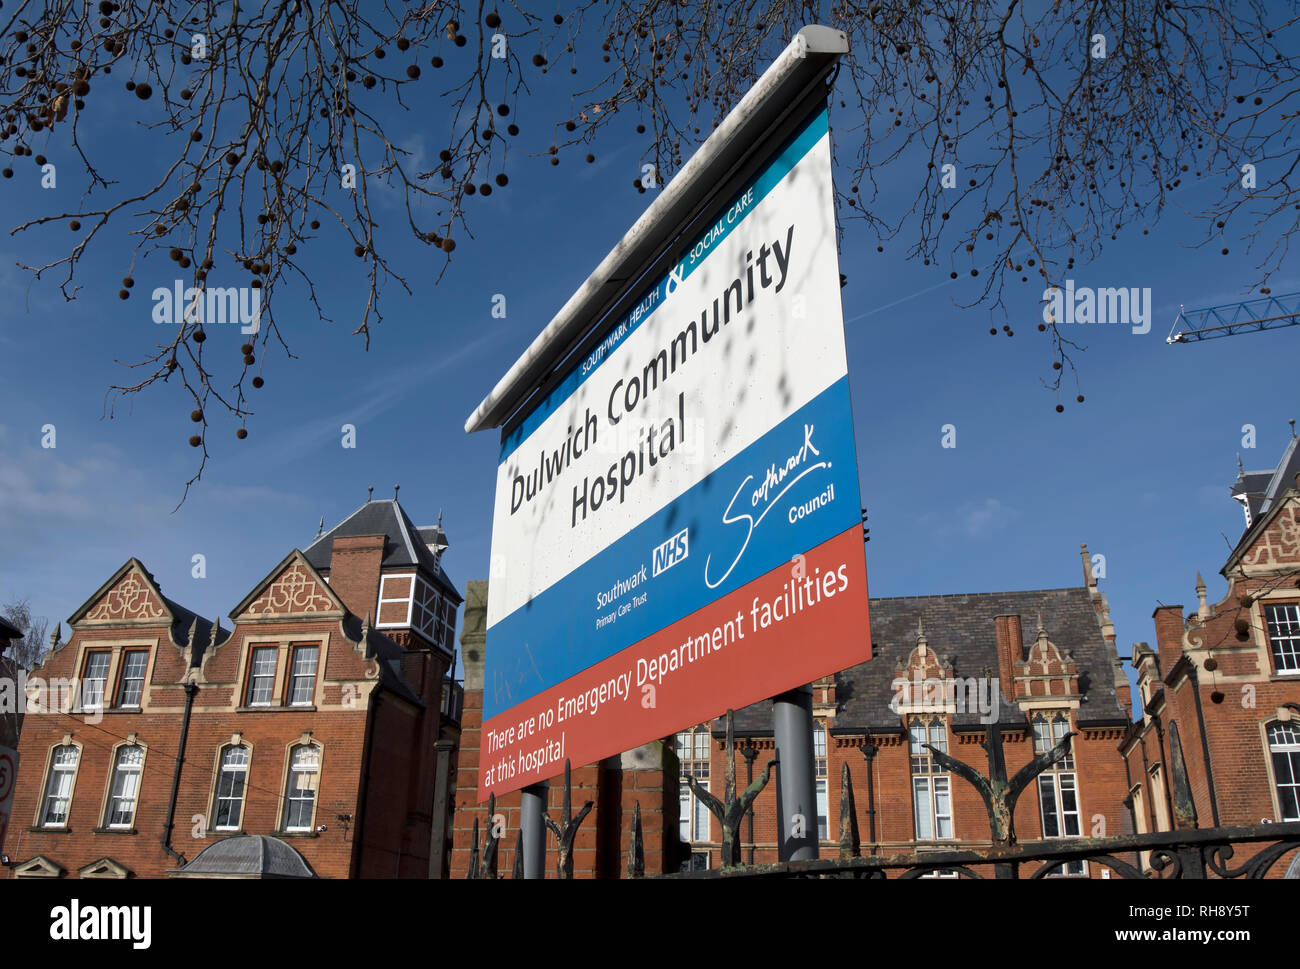 entrance sign at dulwich community hospital, east dulwich, london, england - Stock Image